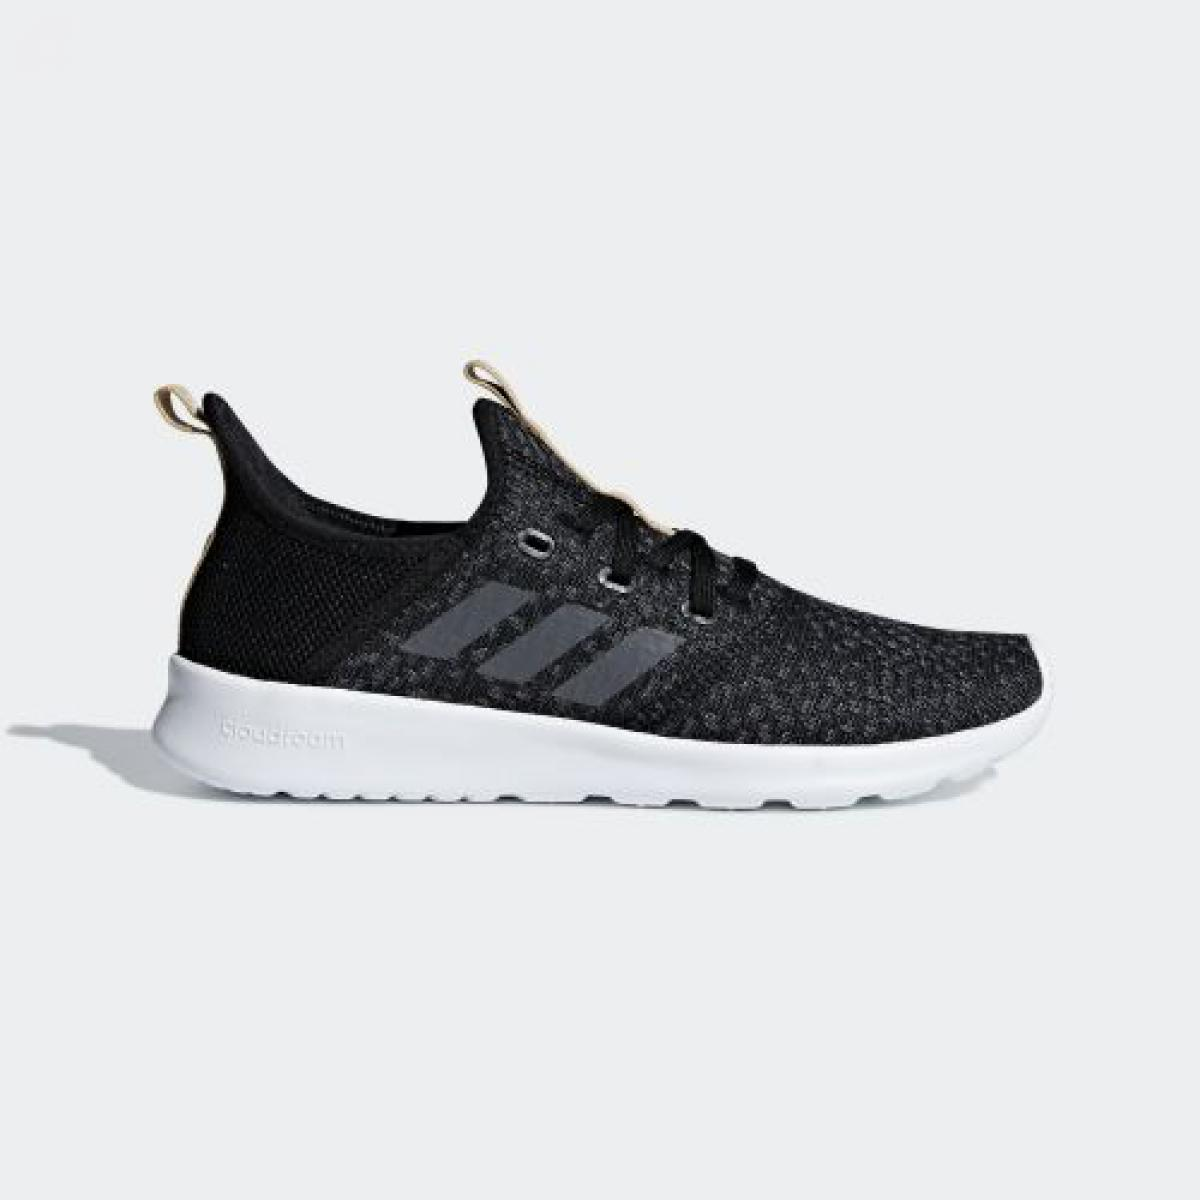 Adidas adidas cloud form pure CLOUDFOAM PURE Lady's running shoes sports shoes F34677 point_adidasday